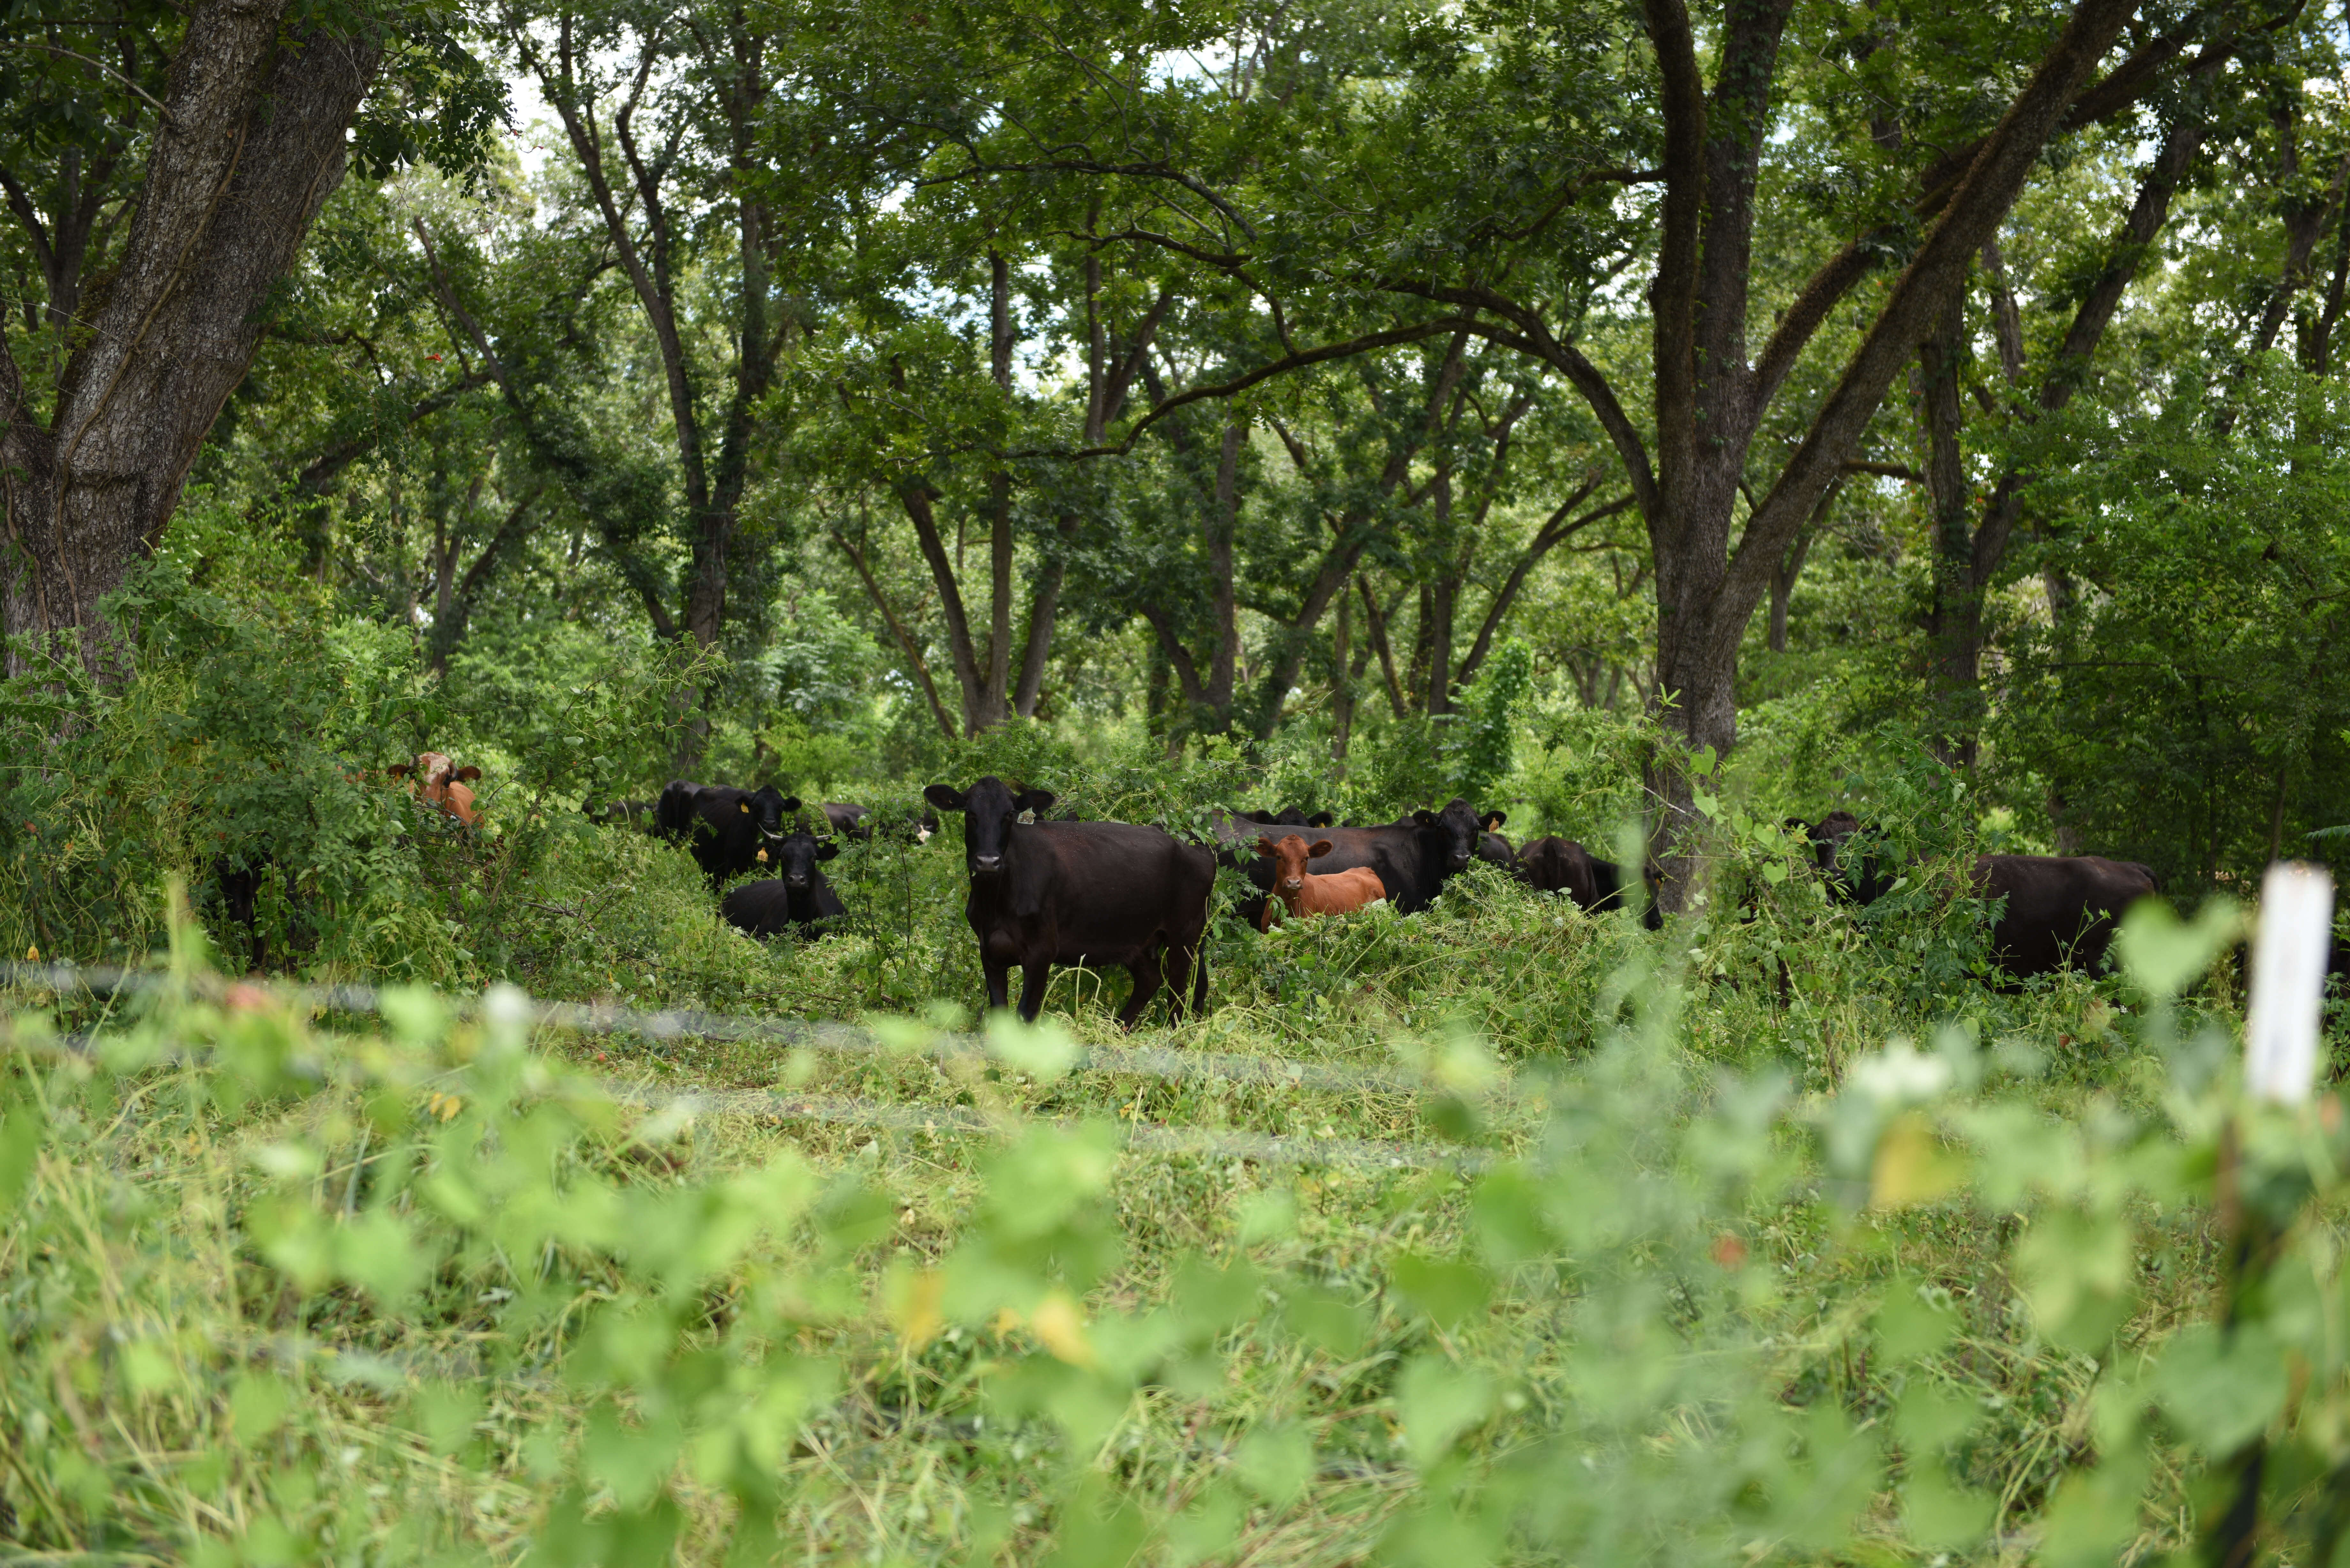 Grassfed cattle in forest (1)